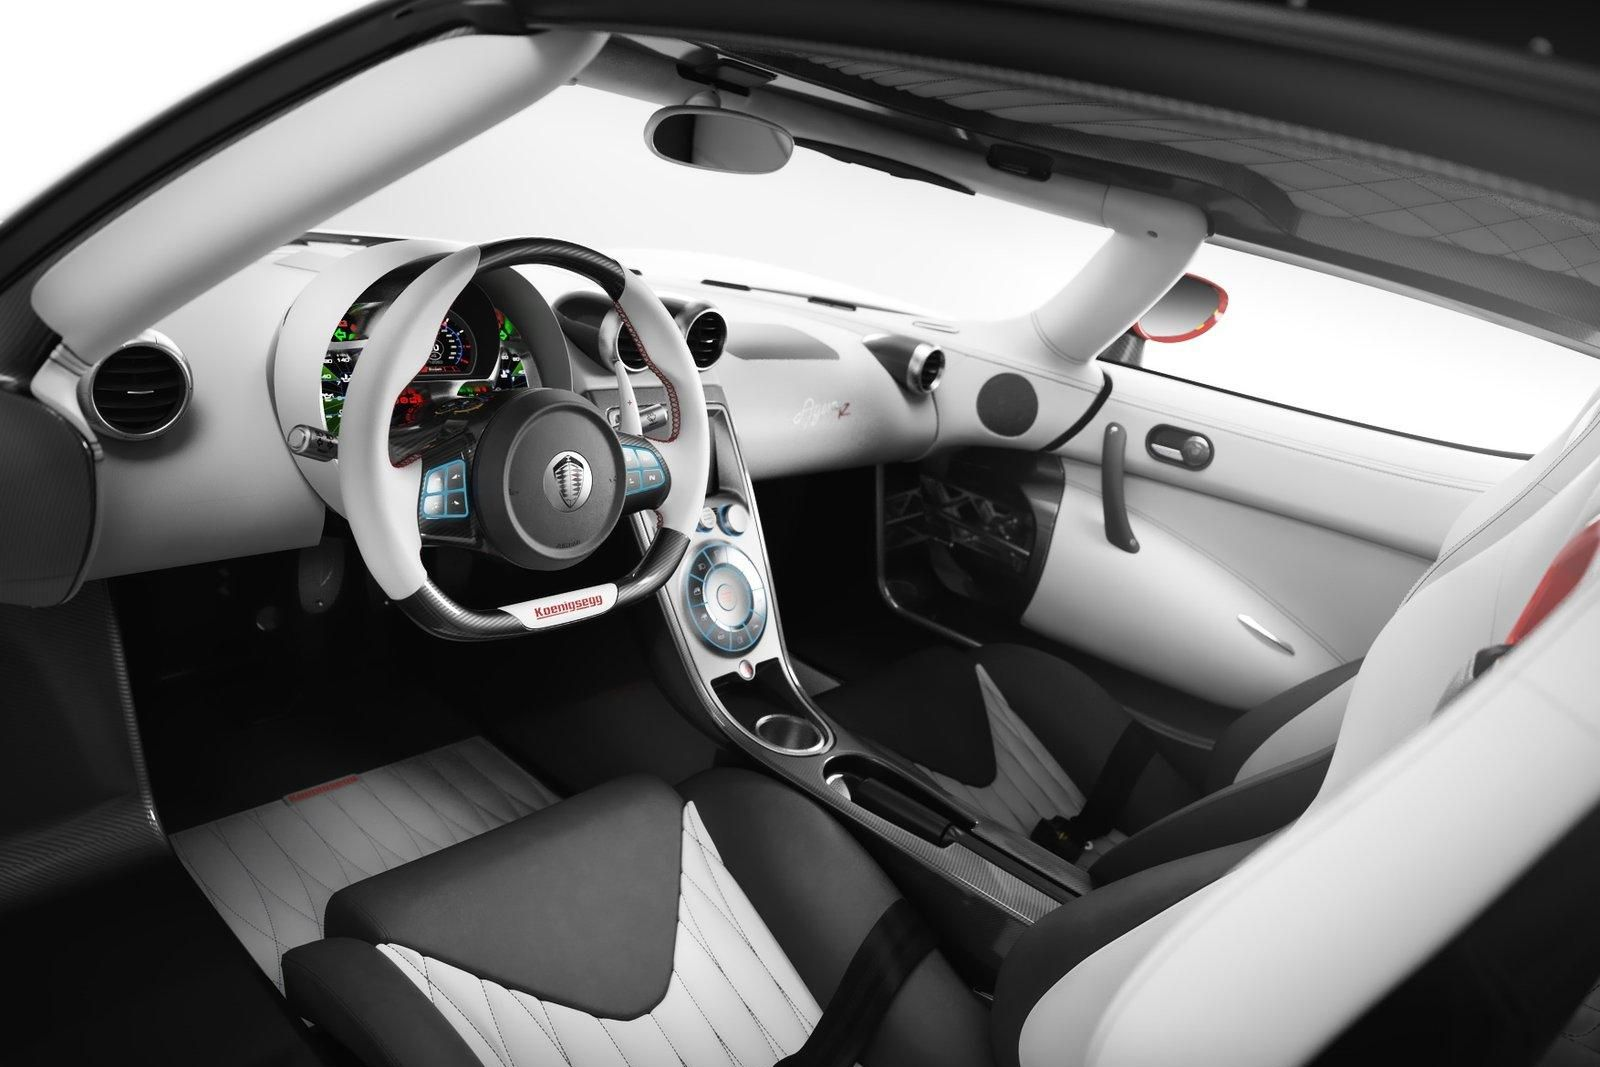 2014 Koenigsegg Agera Interior Picture Wallpaper Is Hd Wallpaper